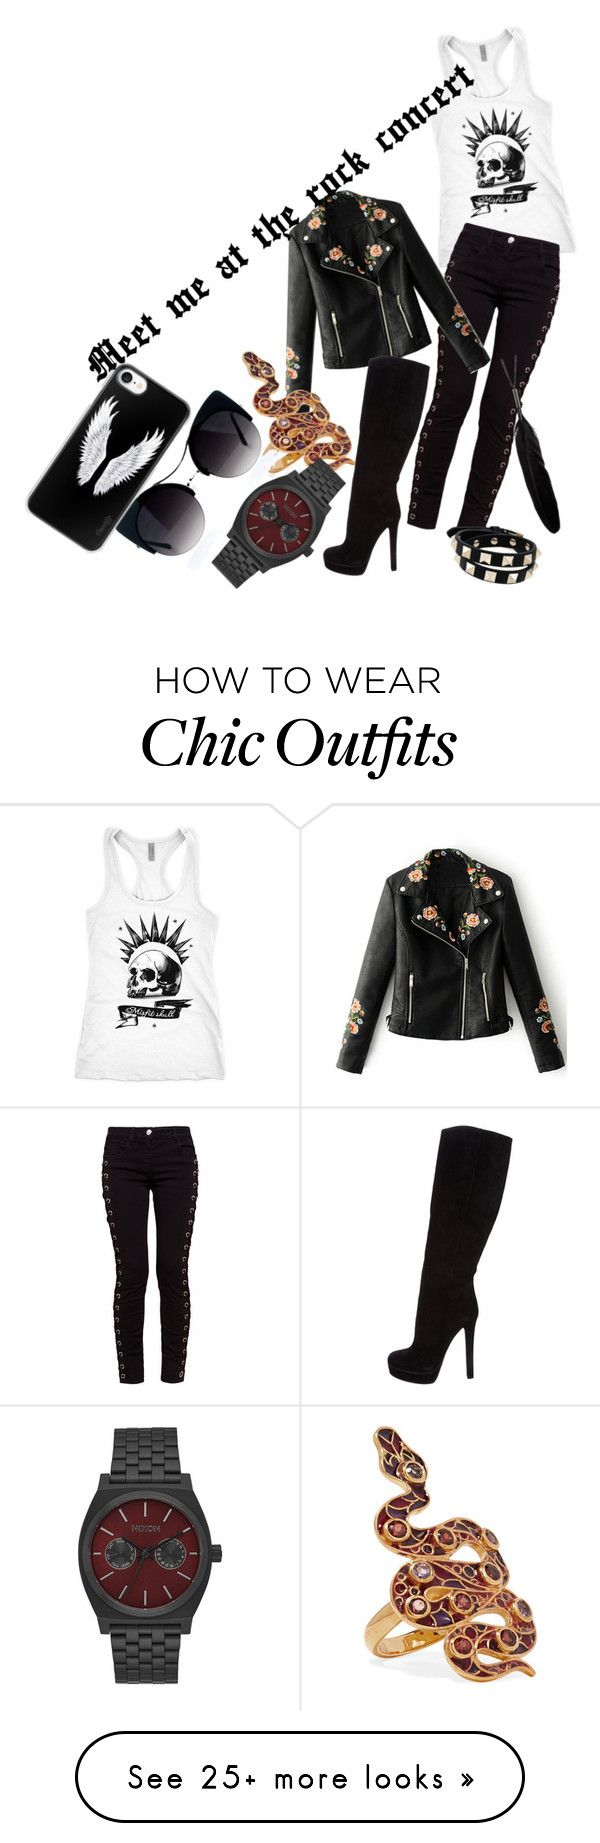 """""""Meet me at the rock concert"""" by kass-bayer on Polyvore featuring WithChic, Gucci, Diego Percossi Papi, Valentino and Casetify"""